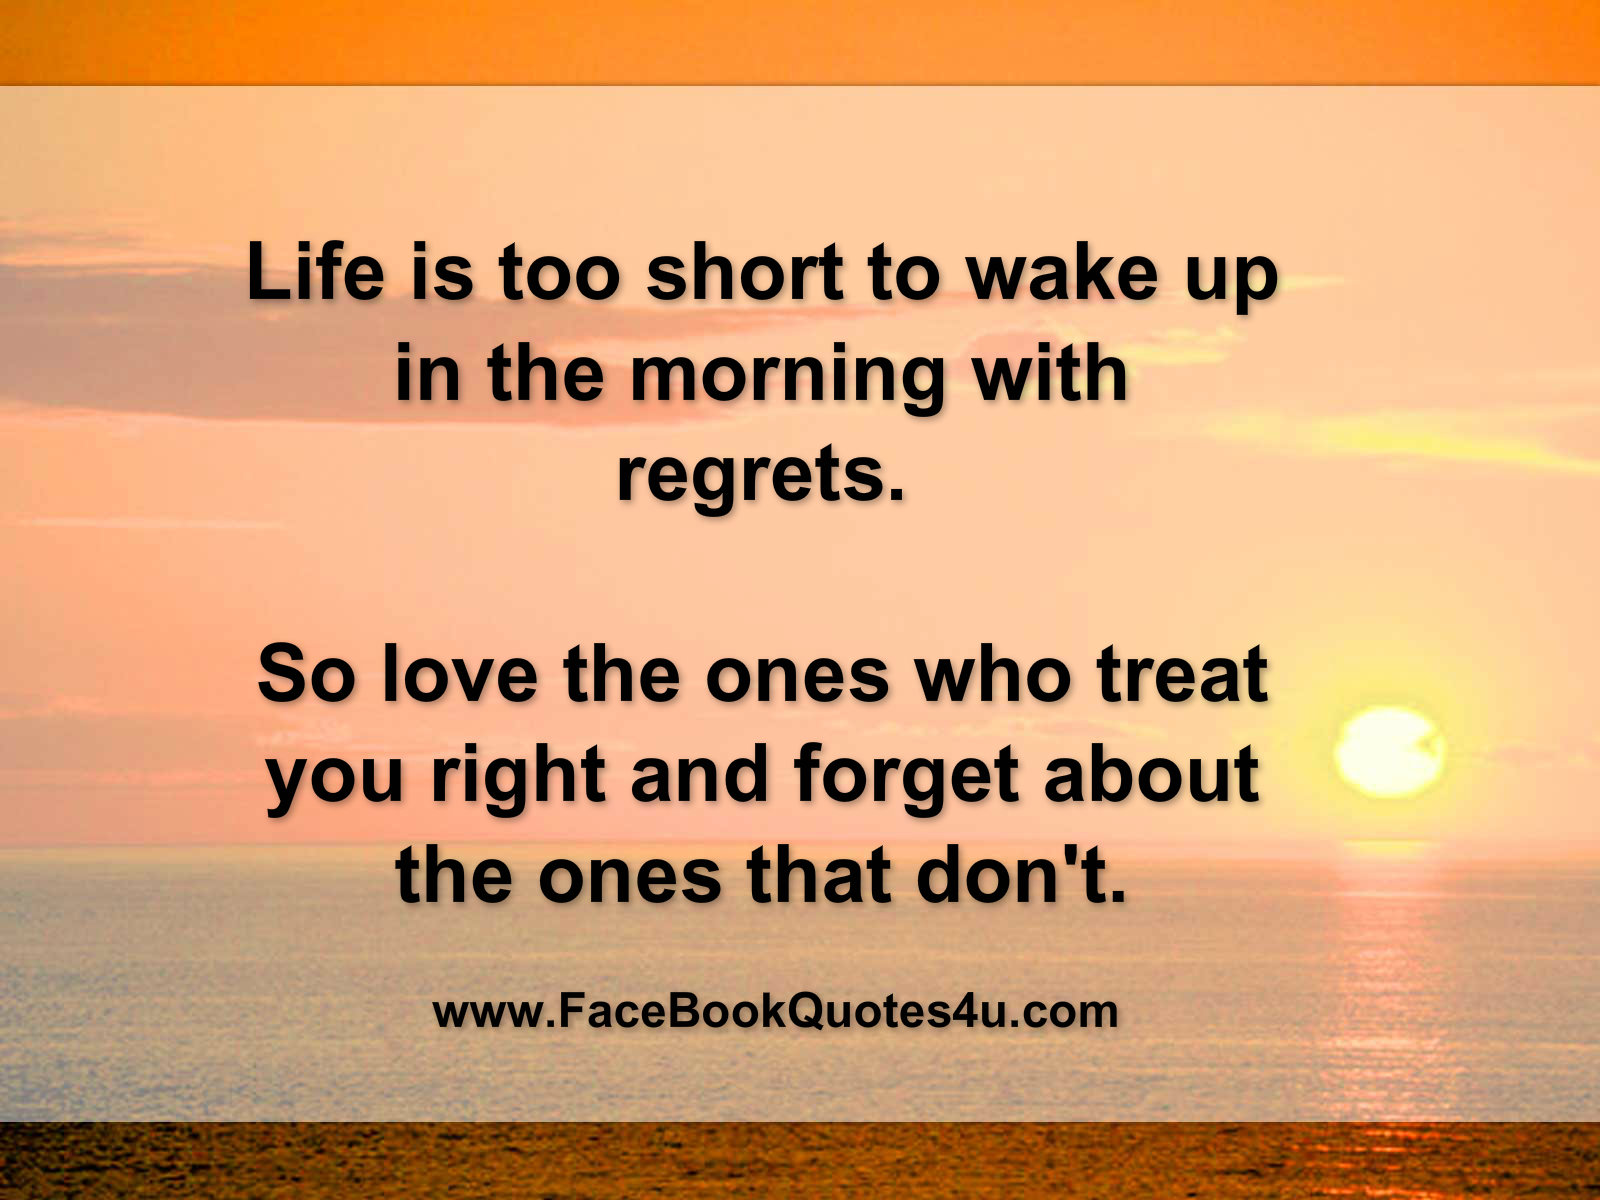 Morning love quotes in spanish 9637296 joyfulvoicesfo classic text messages morning greetings m4hsunfo